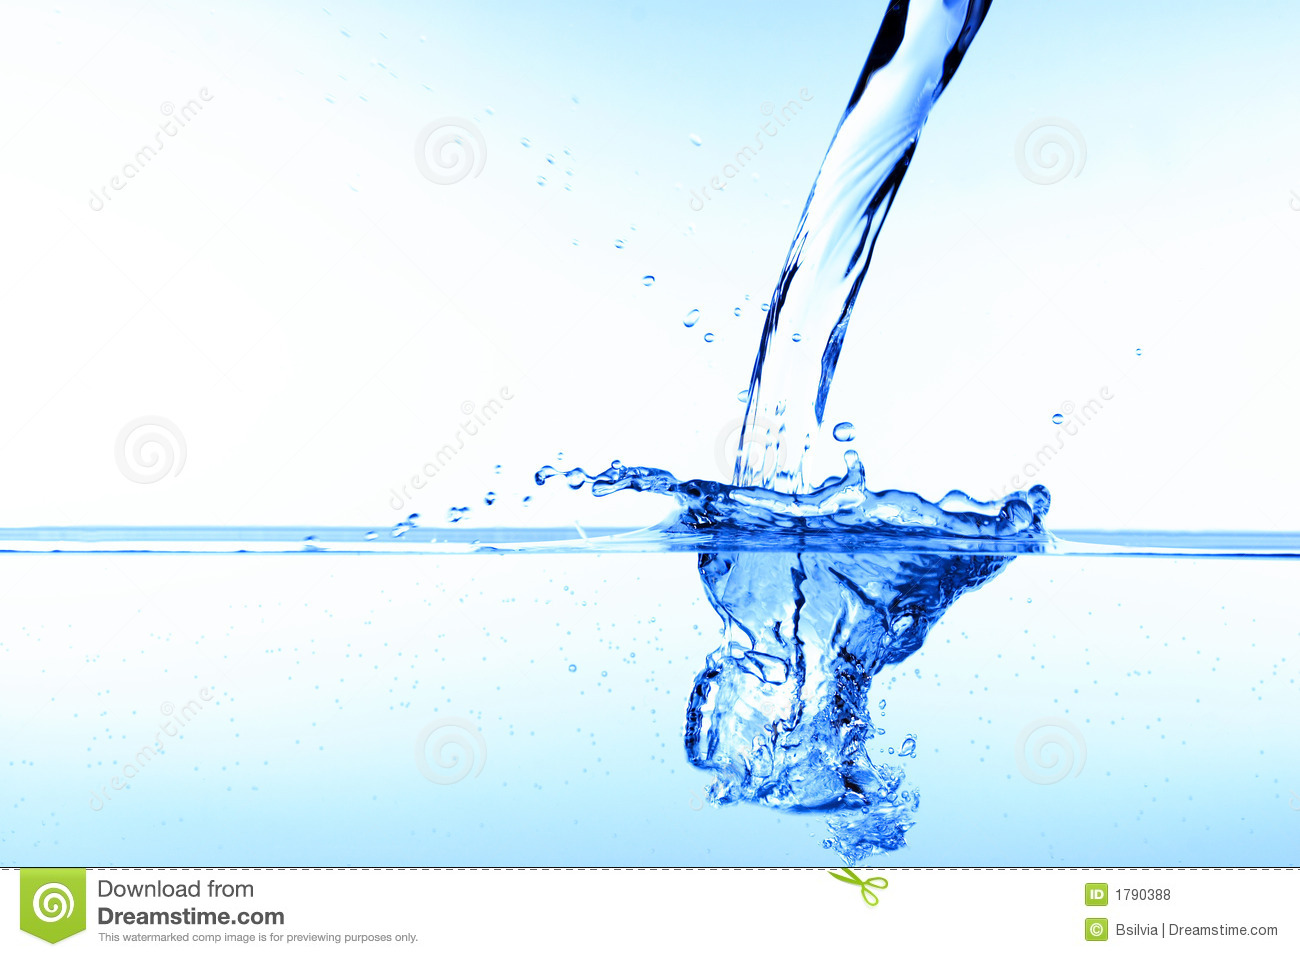 Pouring water stock photo. Image of background, depth - 1790388